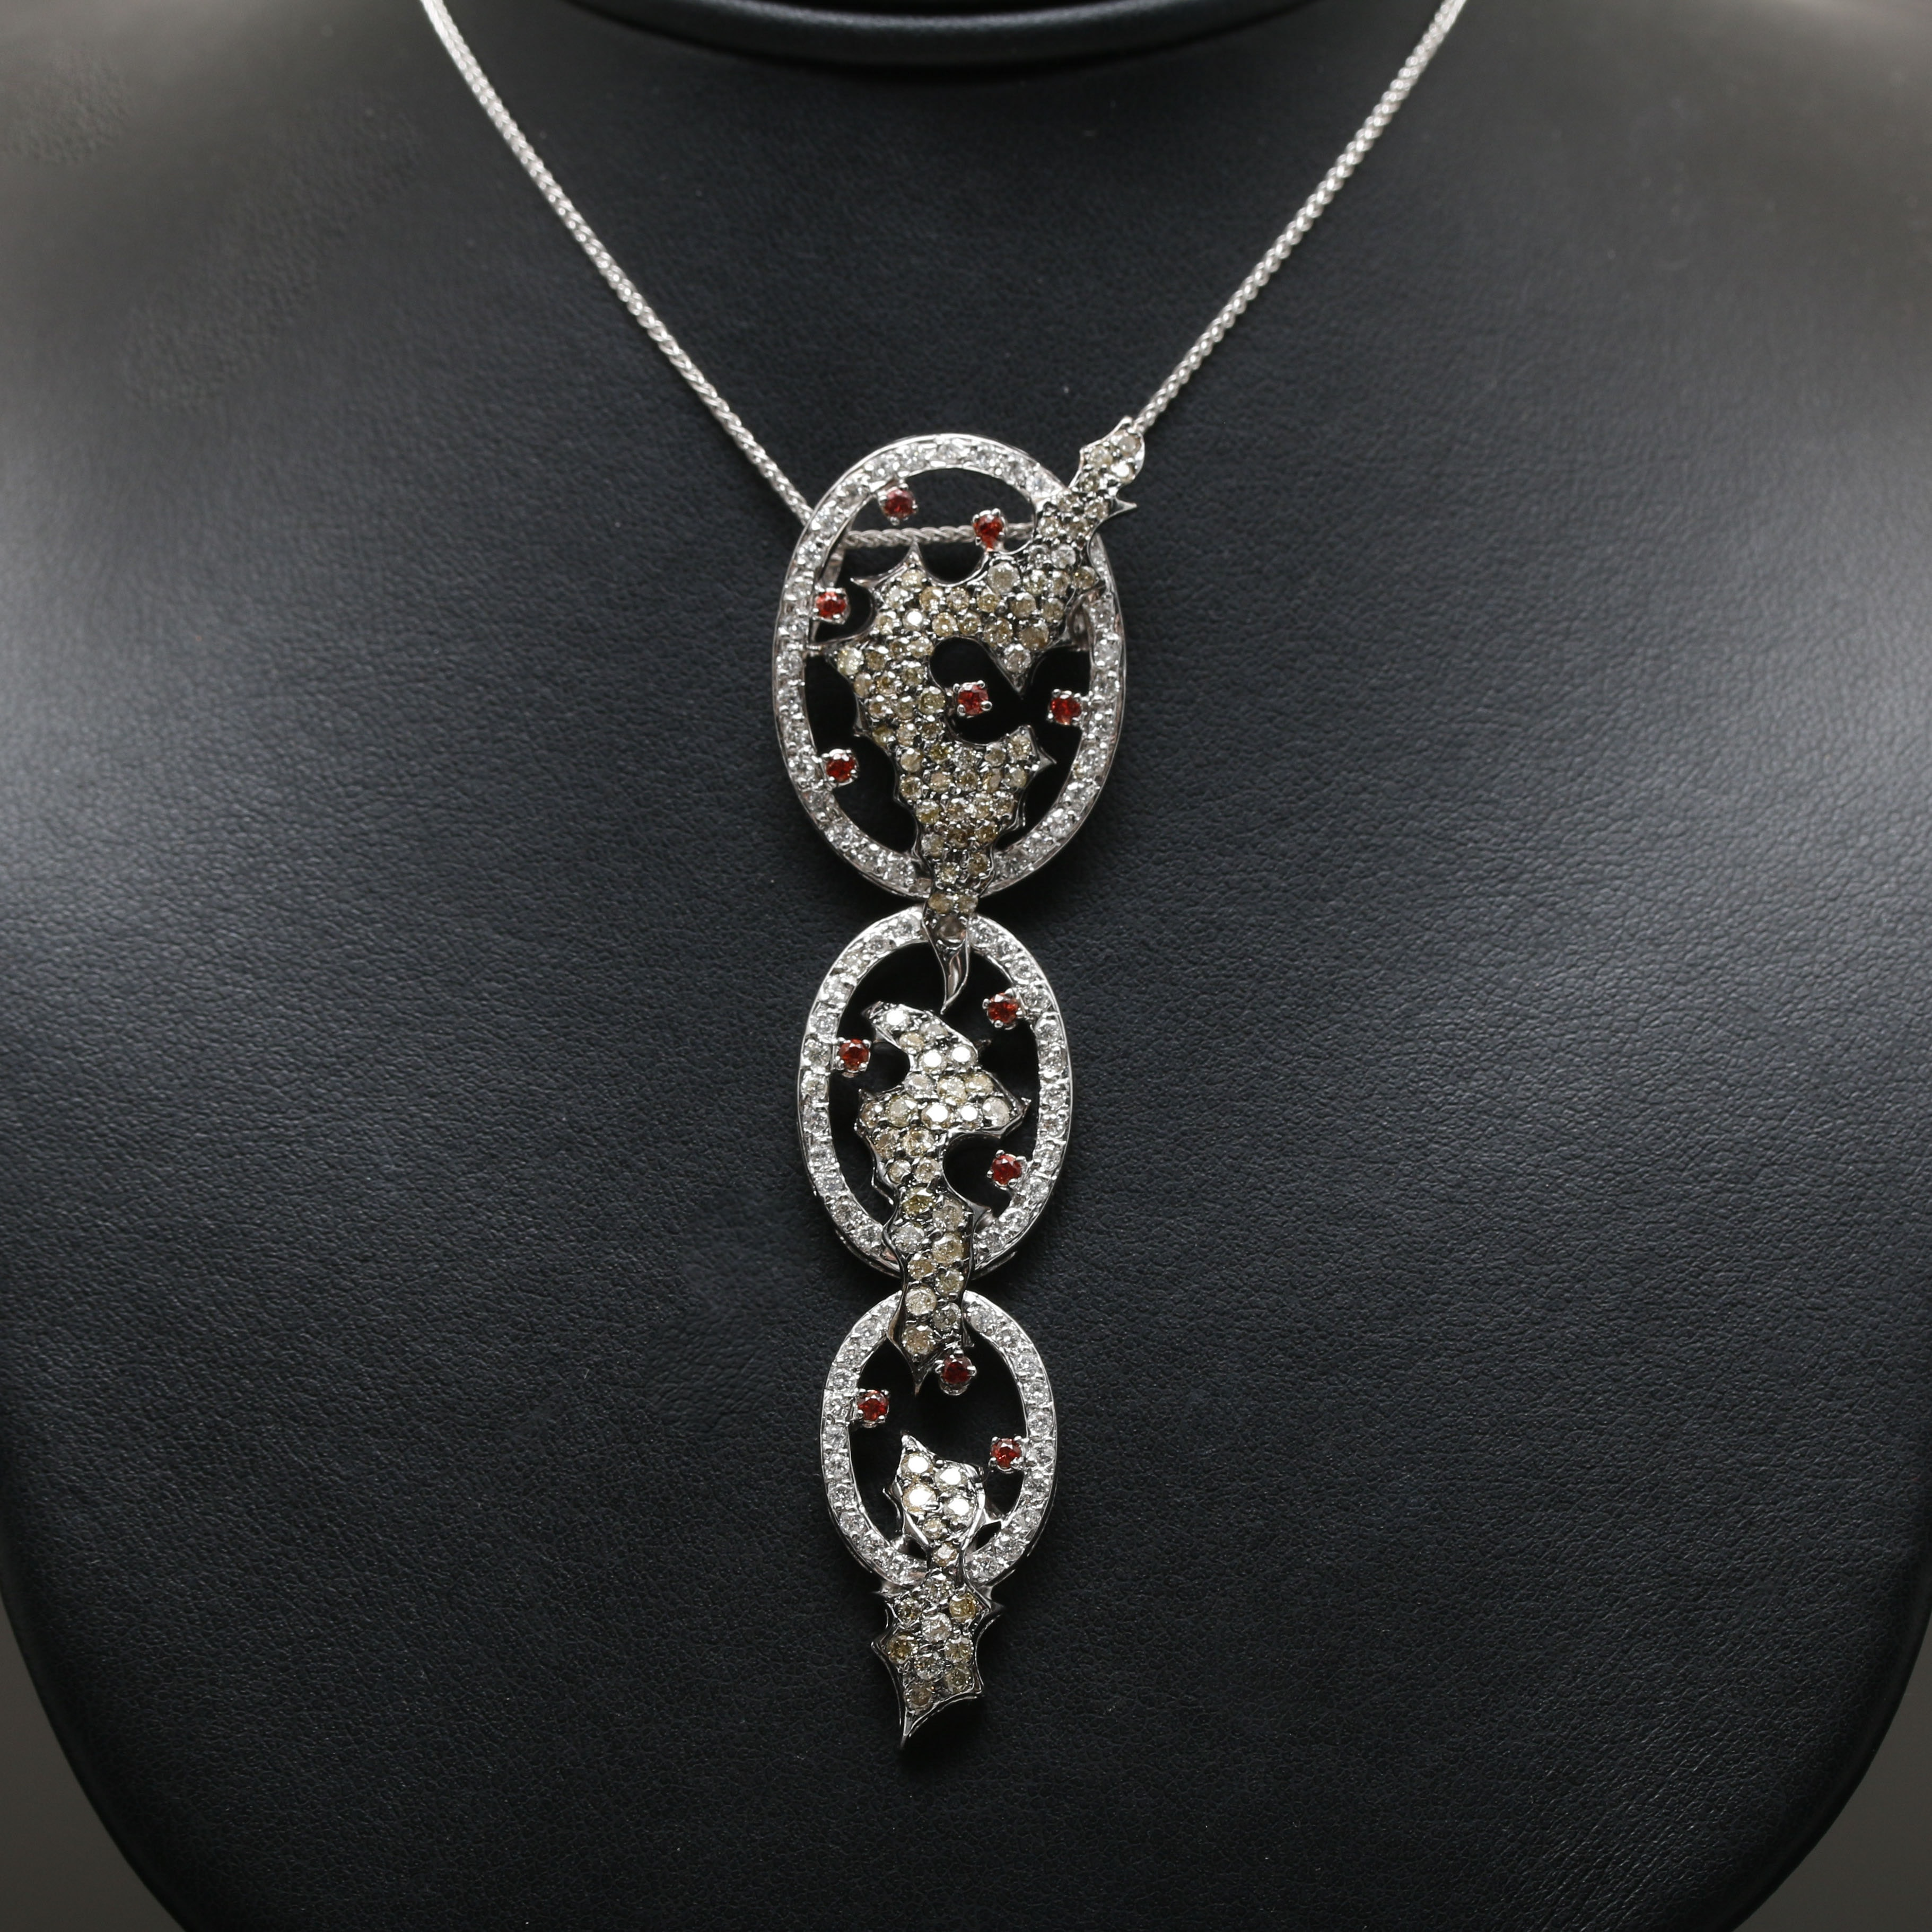 Yessayan 18K White Gold Sapphire and 3.22 CTW Diamond Pendant Necklace